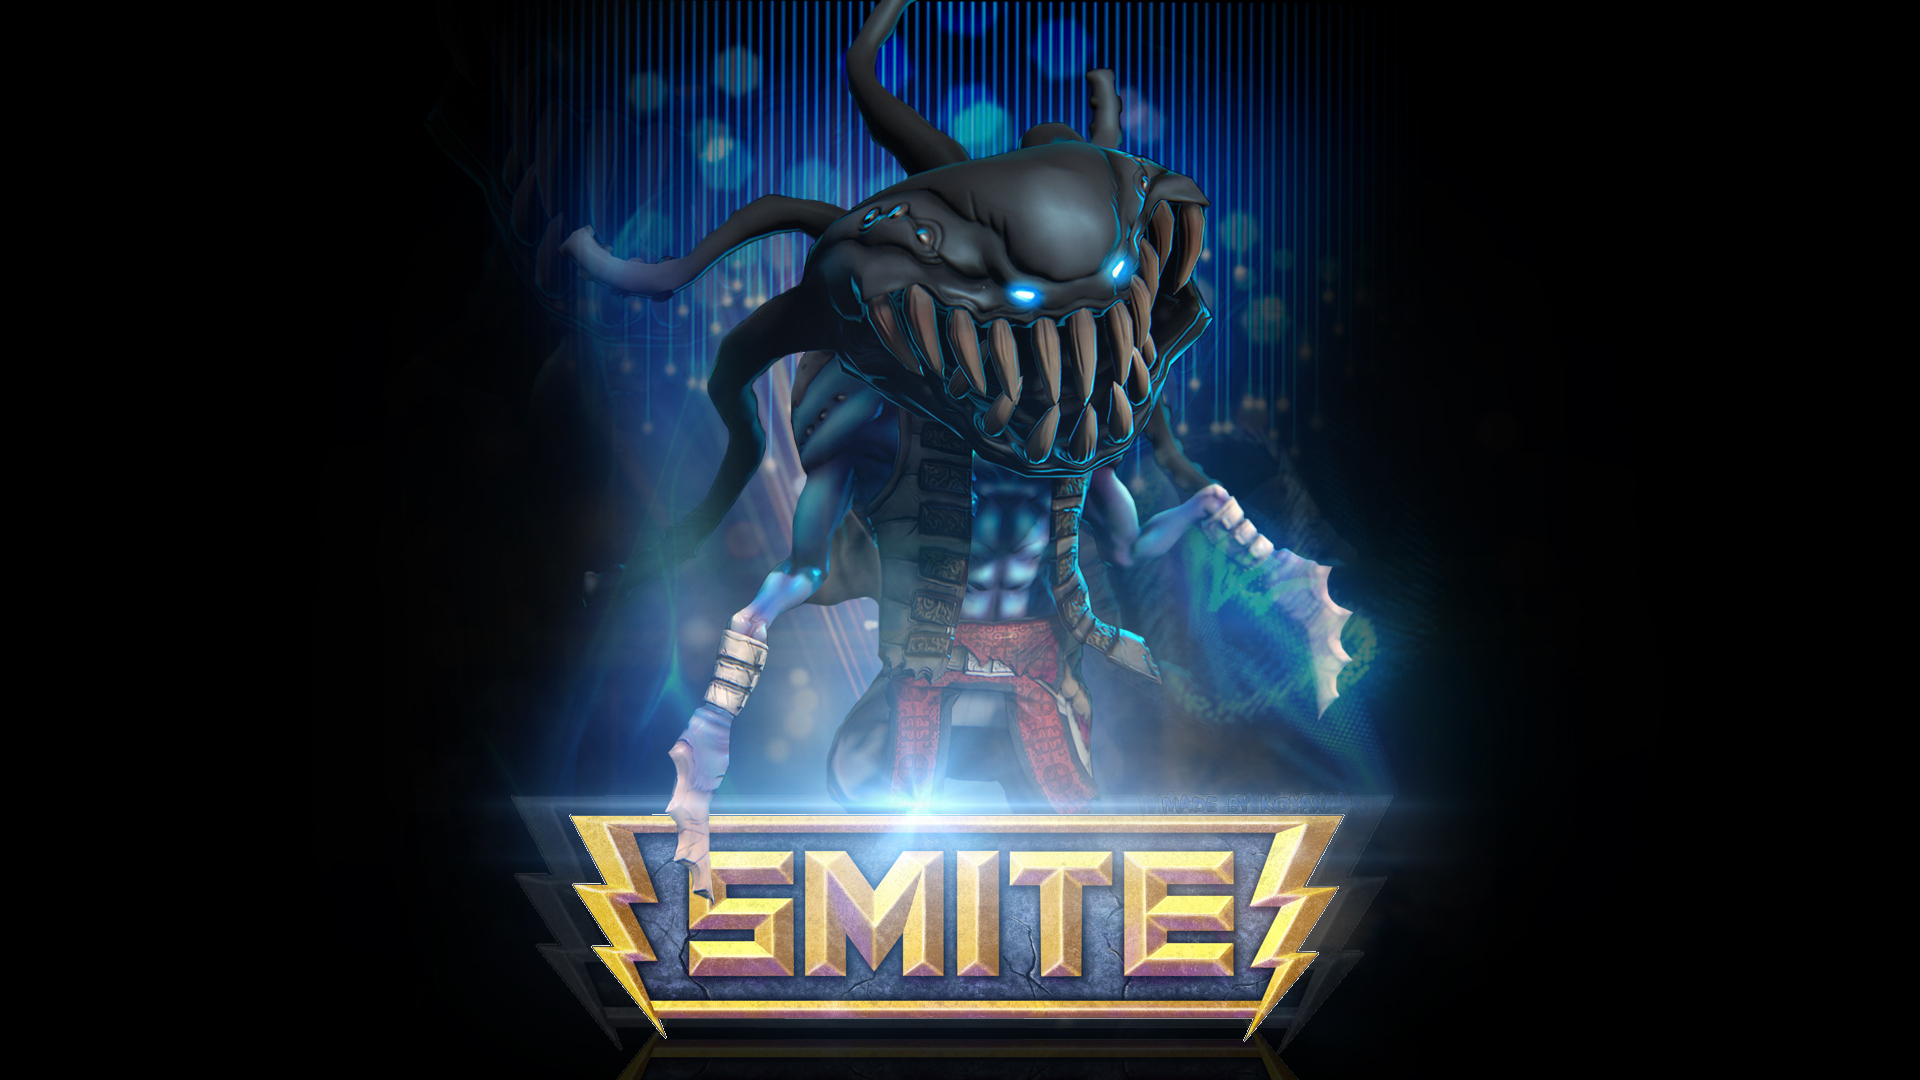 smite pictures